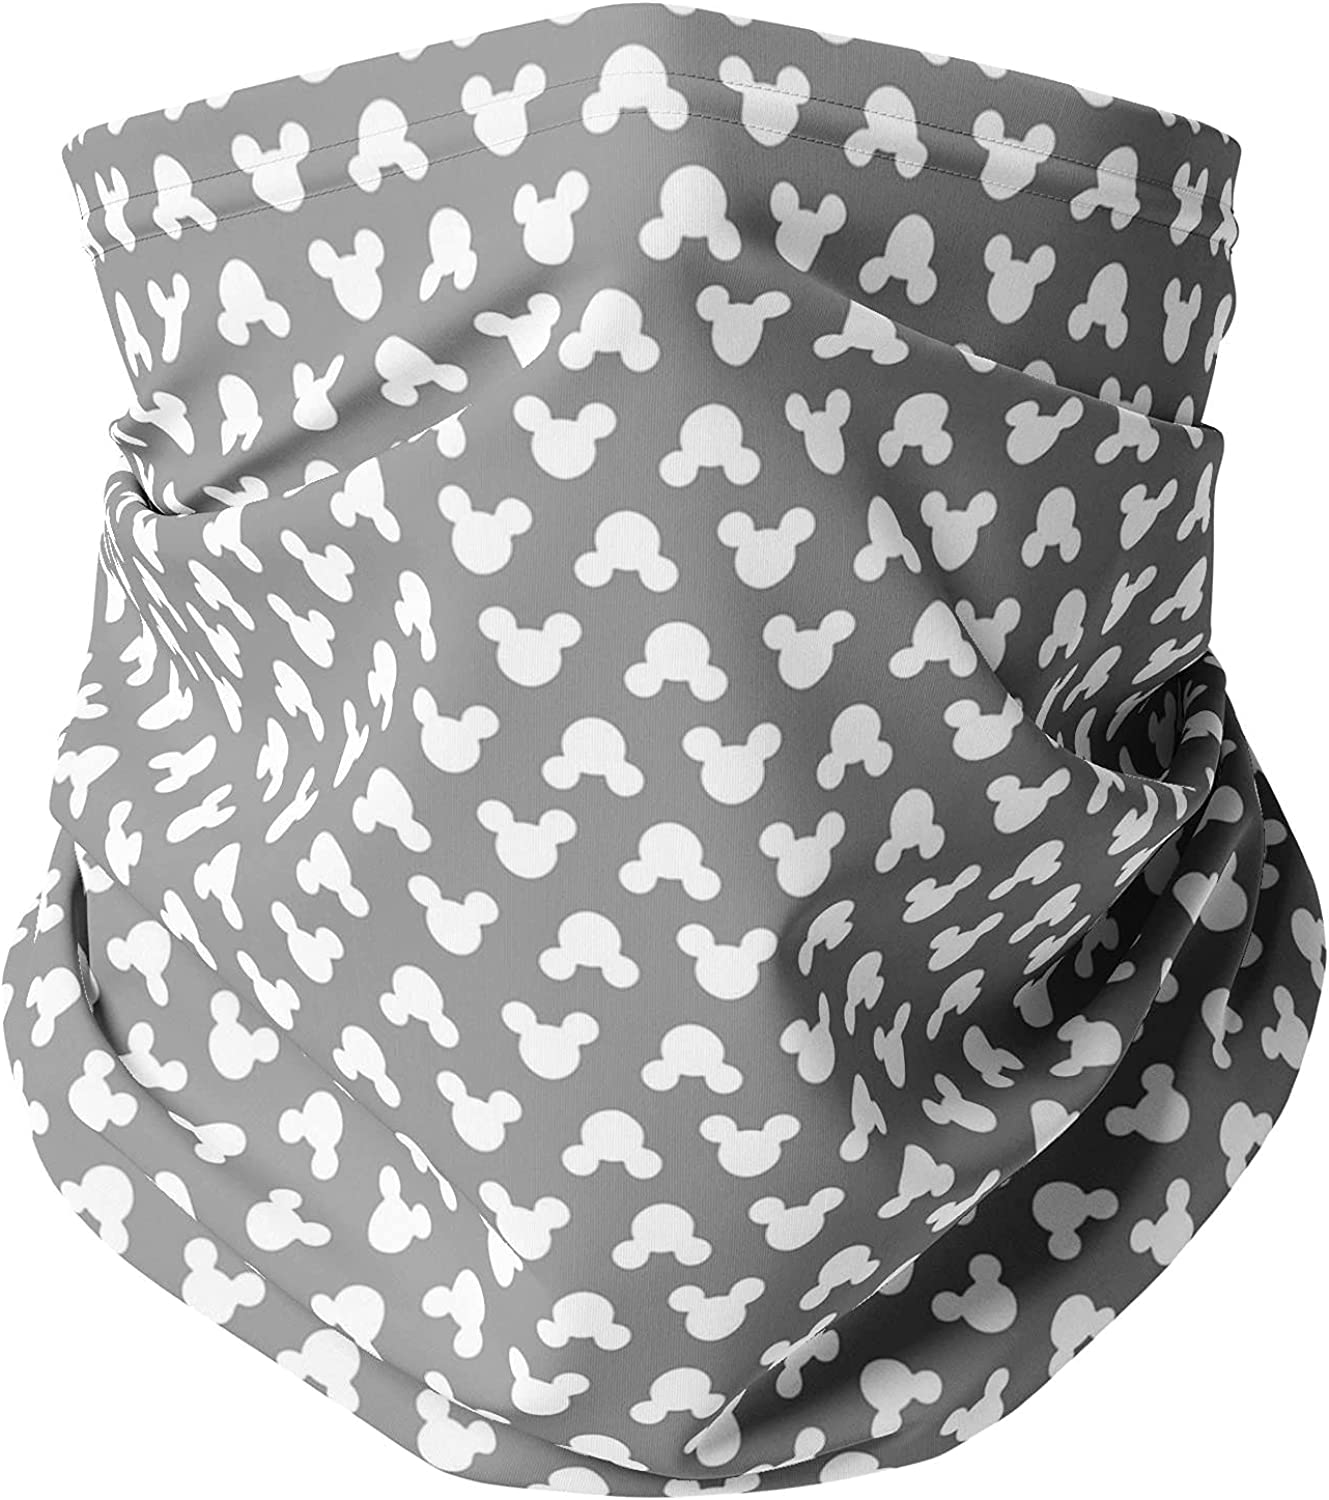 Neck Gaiter Face Covering - Mouse Ears Polka Dots